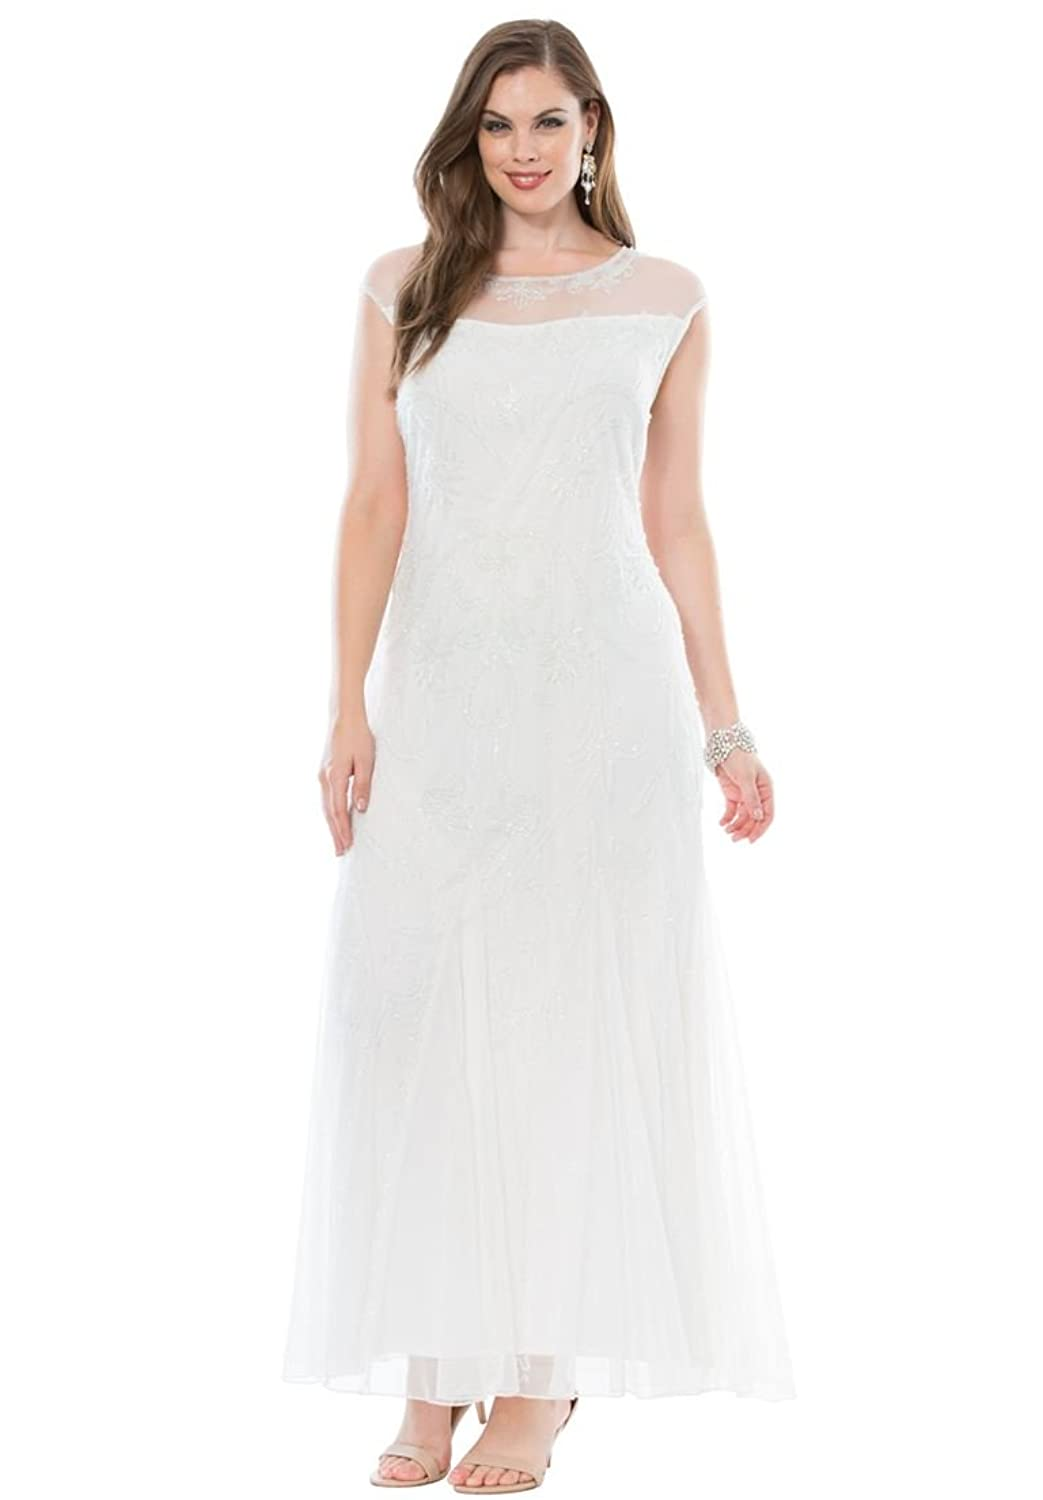 1920s Wedding Dresses- Art Deco Style Pisarro Nights Womens Plus Size Beaded Column Dress By Pisarro Nights $215.56 AT vintagedancer.com